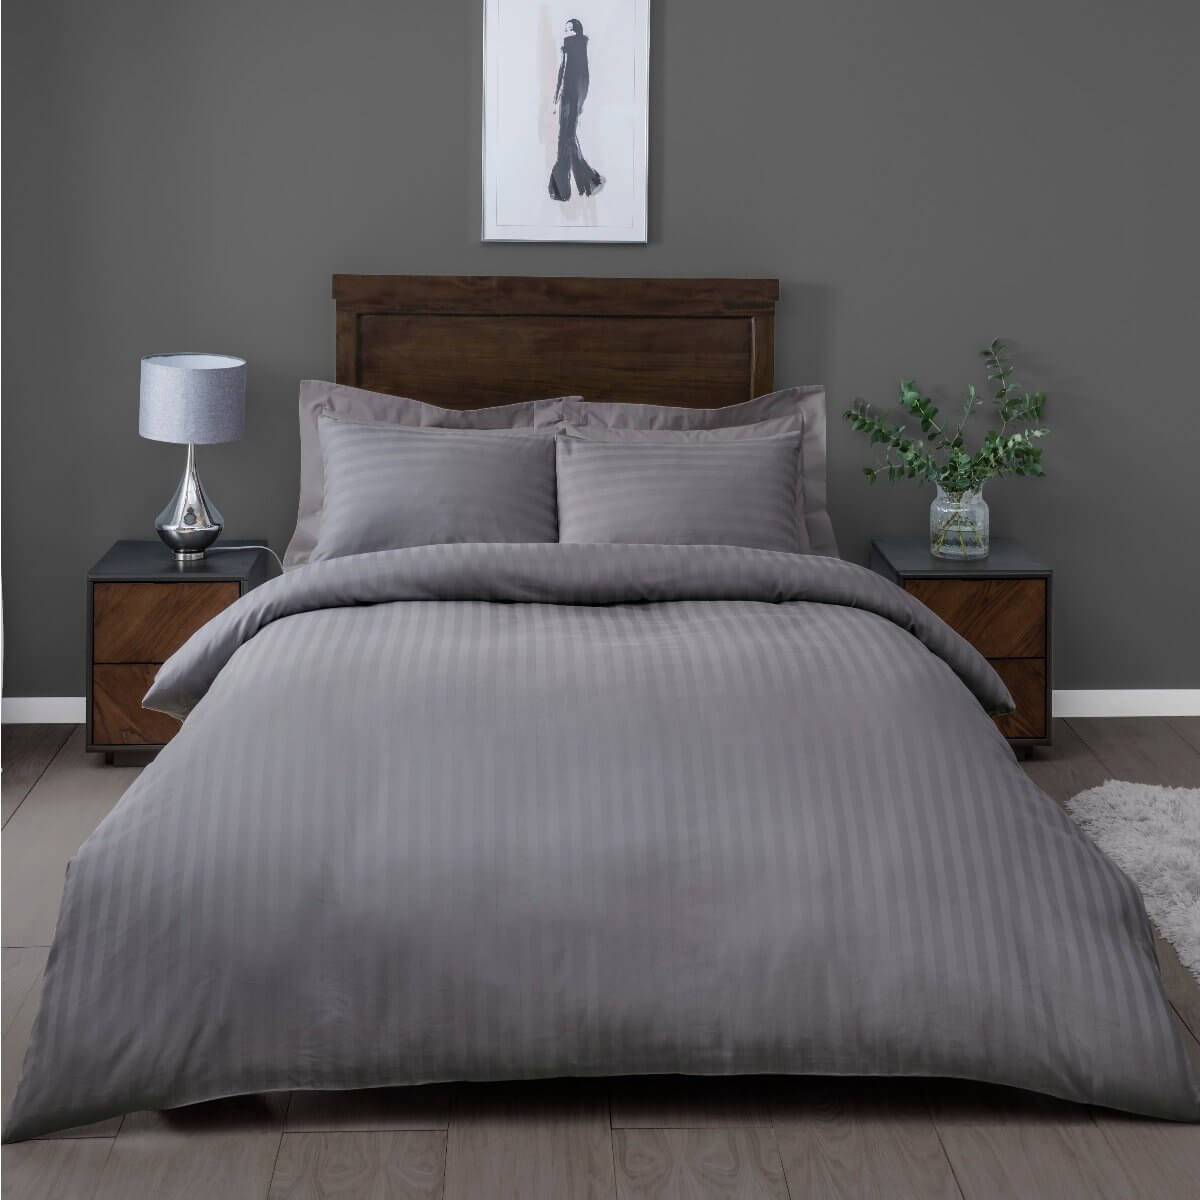 Satin Stripe Grey Bedding - 225 Thread Count Duvet Cover and Pillowcase Set